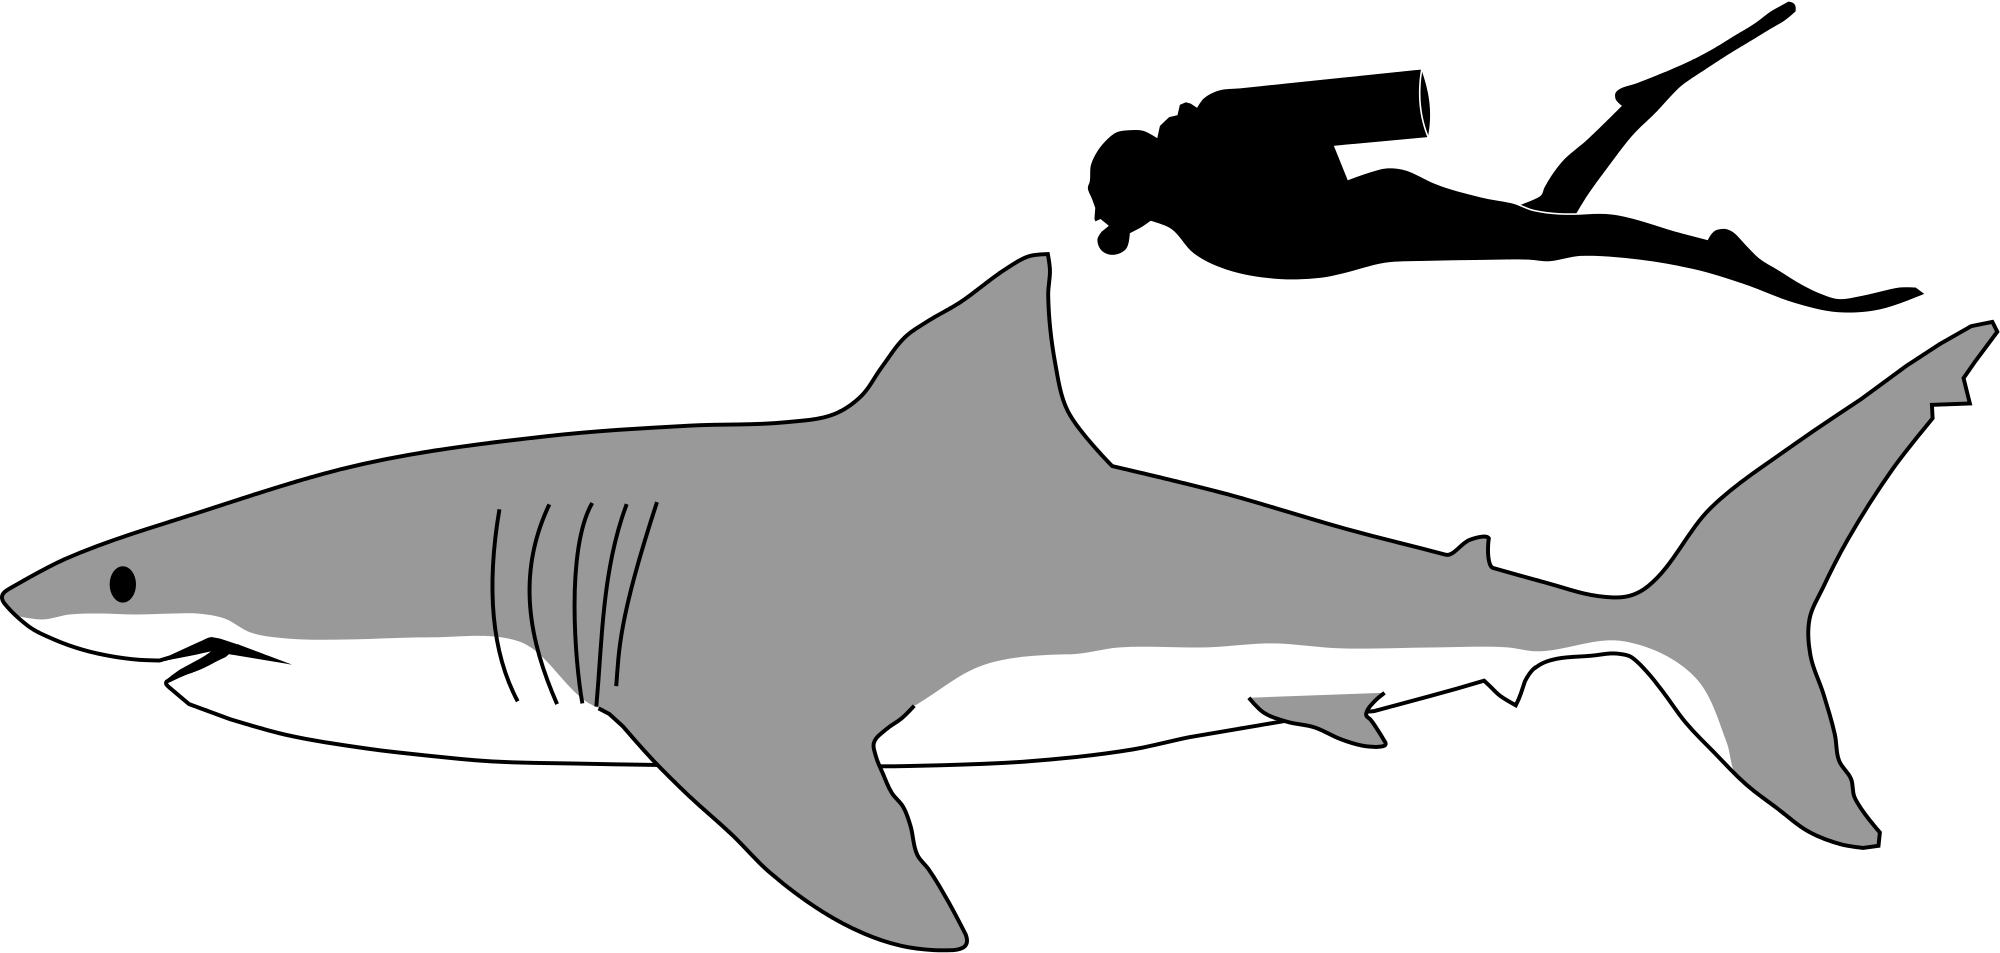 collection of drawing. Clipart shark side view